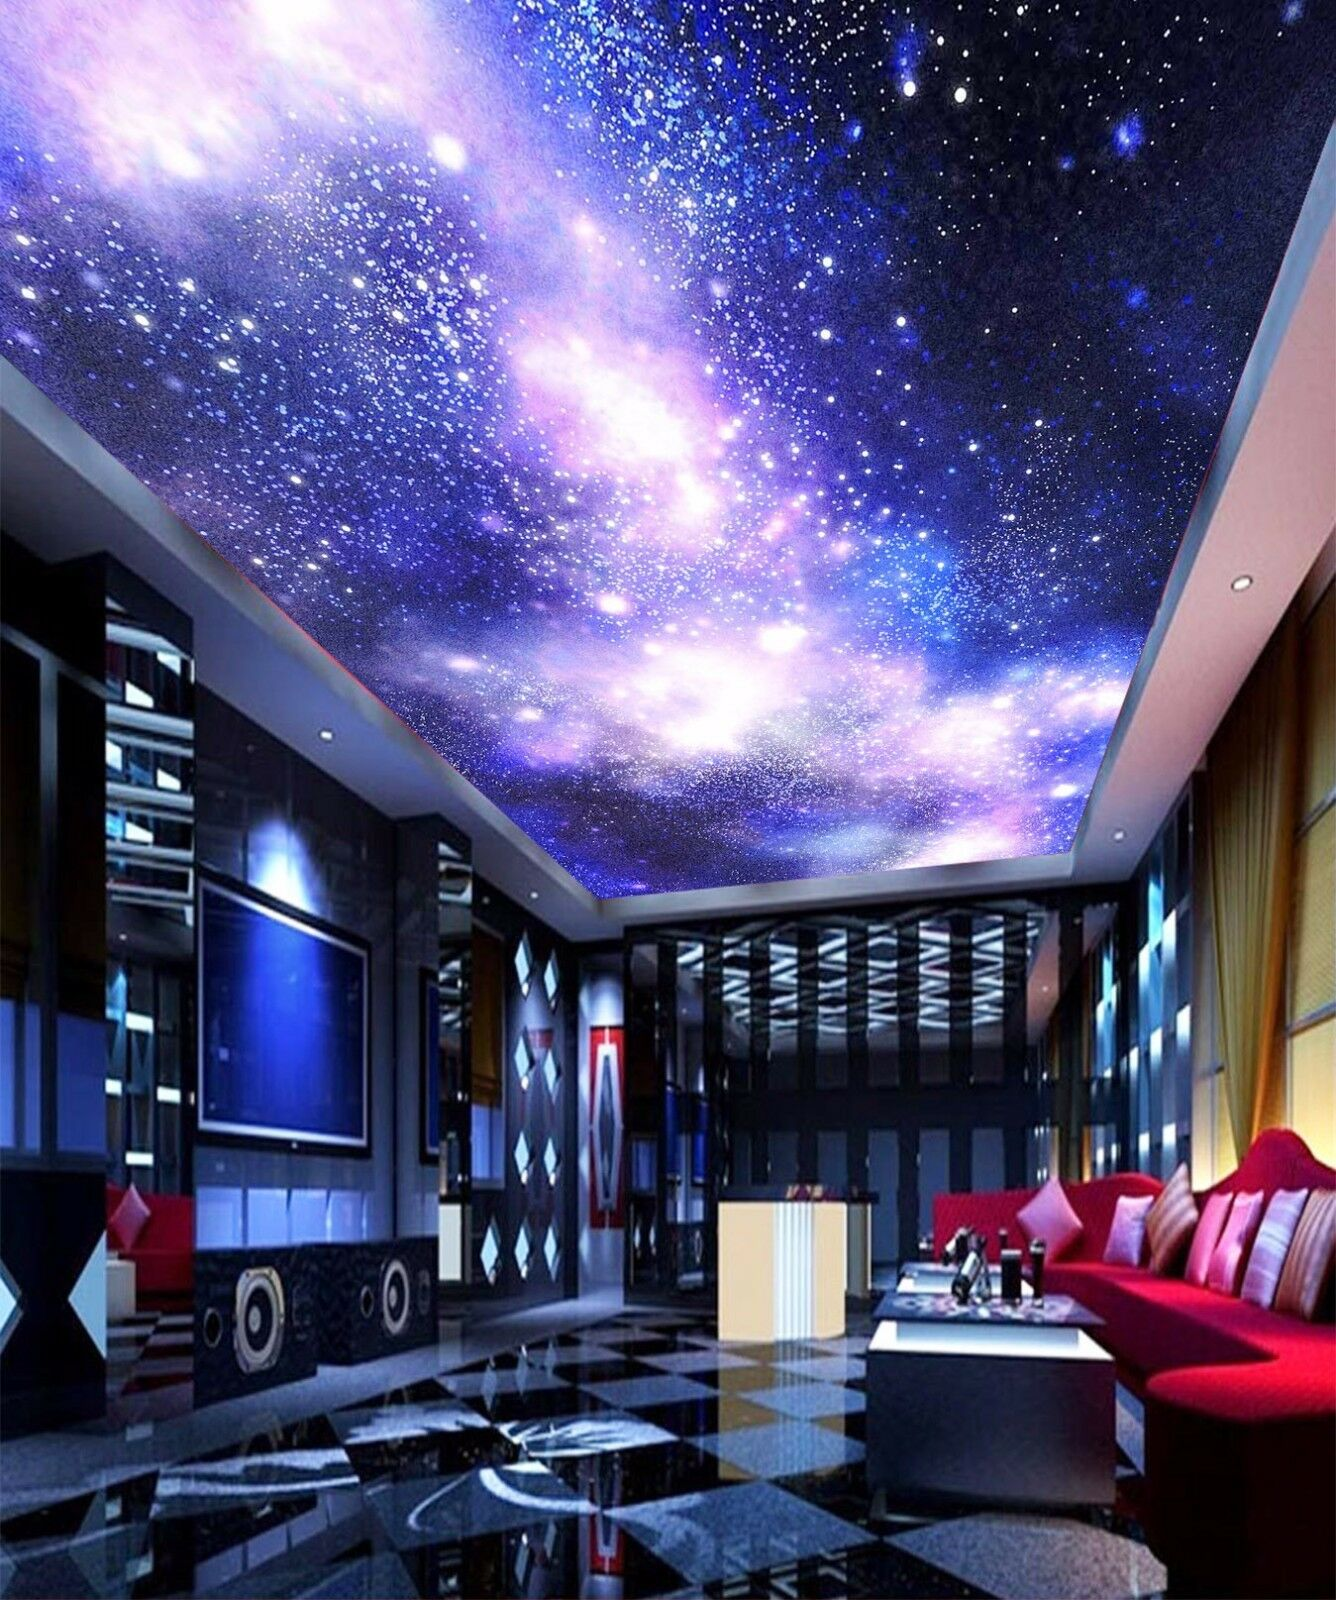 3D Shiny Blau Star 8 Ceiling WallPaper Murals Wall Print Decal Deco AJ WALLPAPER